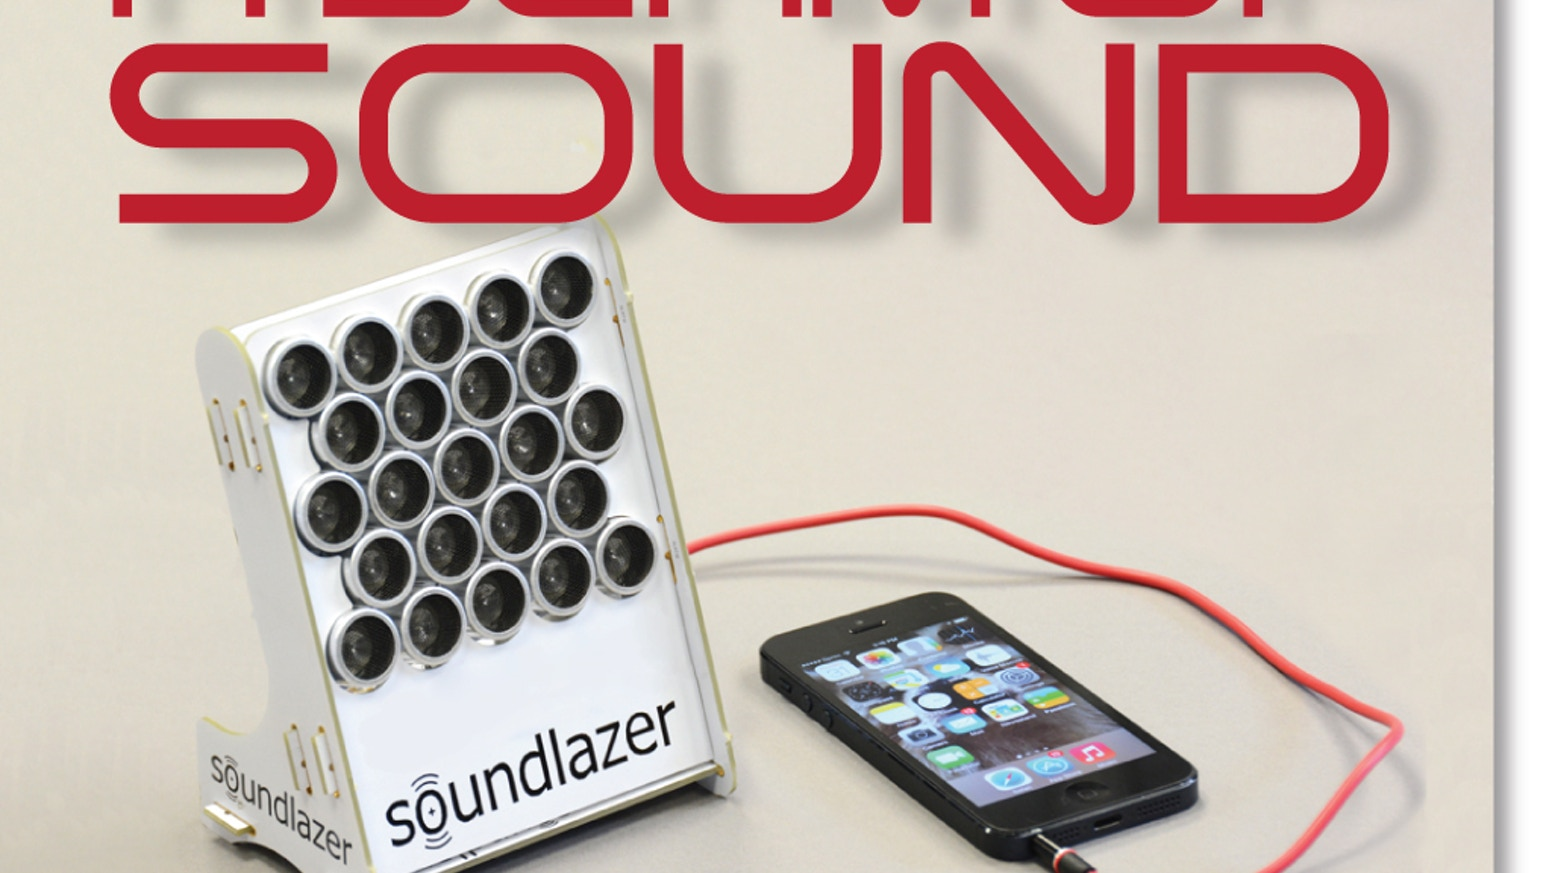 Soundlazer Snap The Directional Parametric Speaker By Richard Hypersonic Sound Technology Focus A Beam Of At Objects Or Into Your Head This Project Is